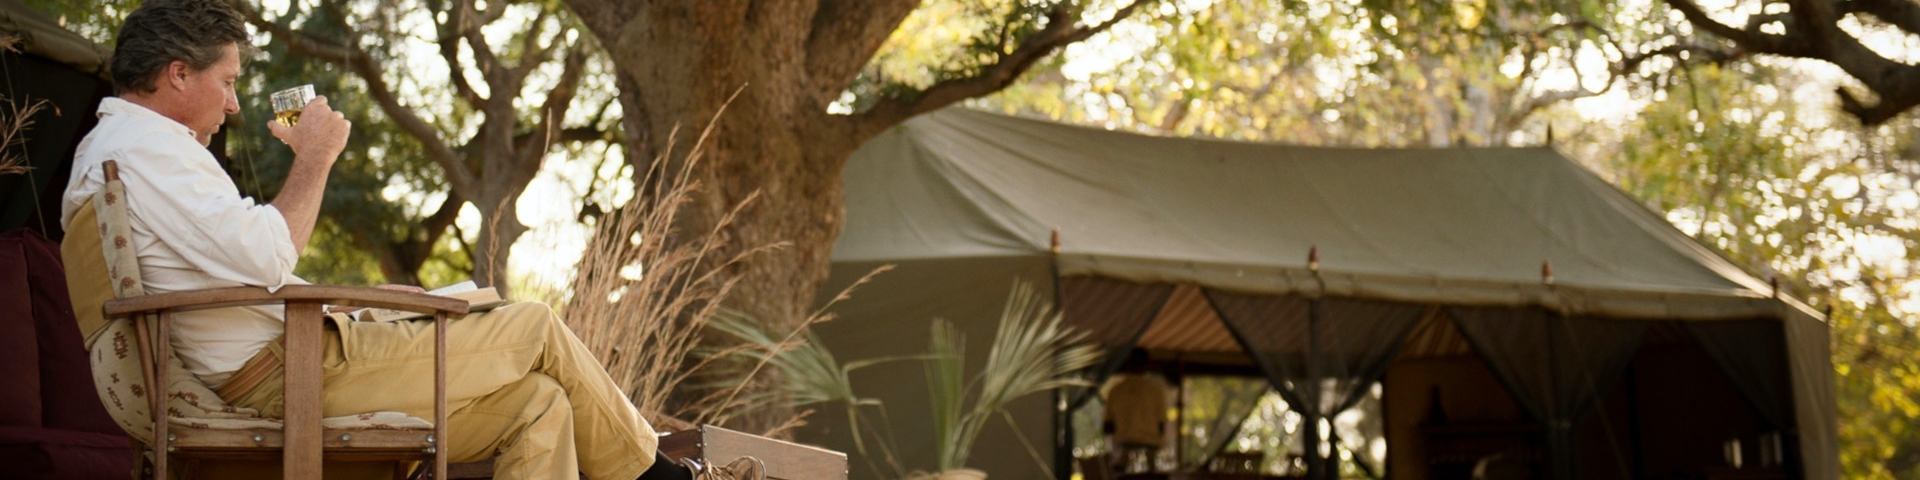 Accommodation in Tanzania Katavi National Park Chada Katavi Tented Camp